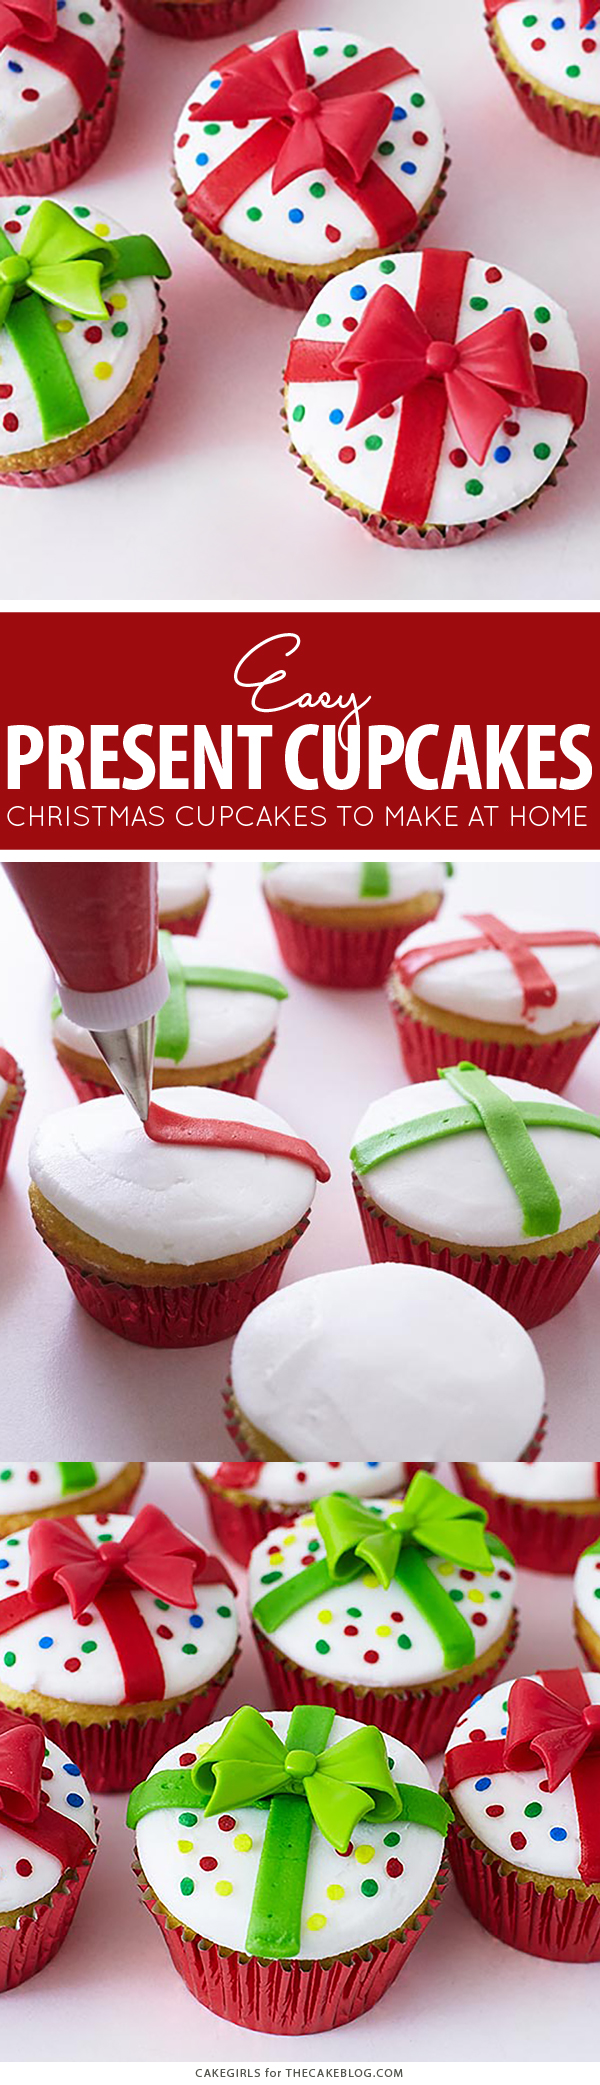 Christmas Present Cupcakes - how to decorate cupcakes to look like a gift box. A quick and easy holiday dessert | by Cakegirls for TheCakeBlog.com